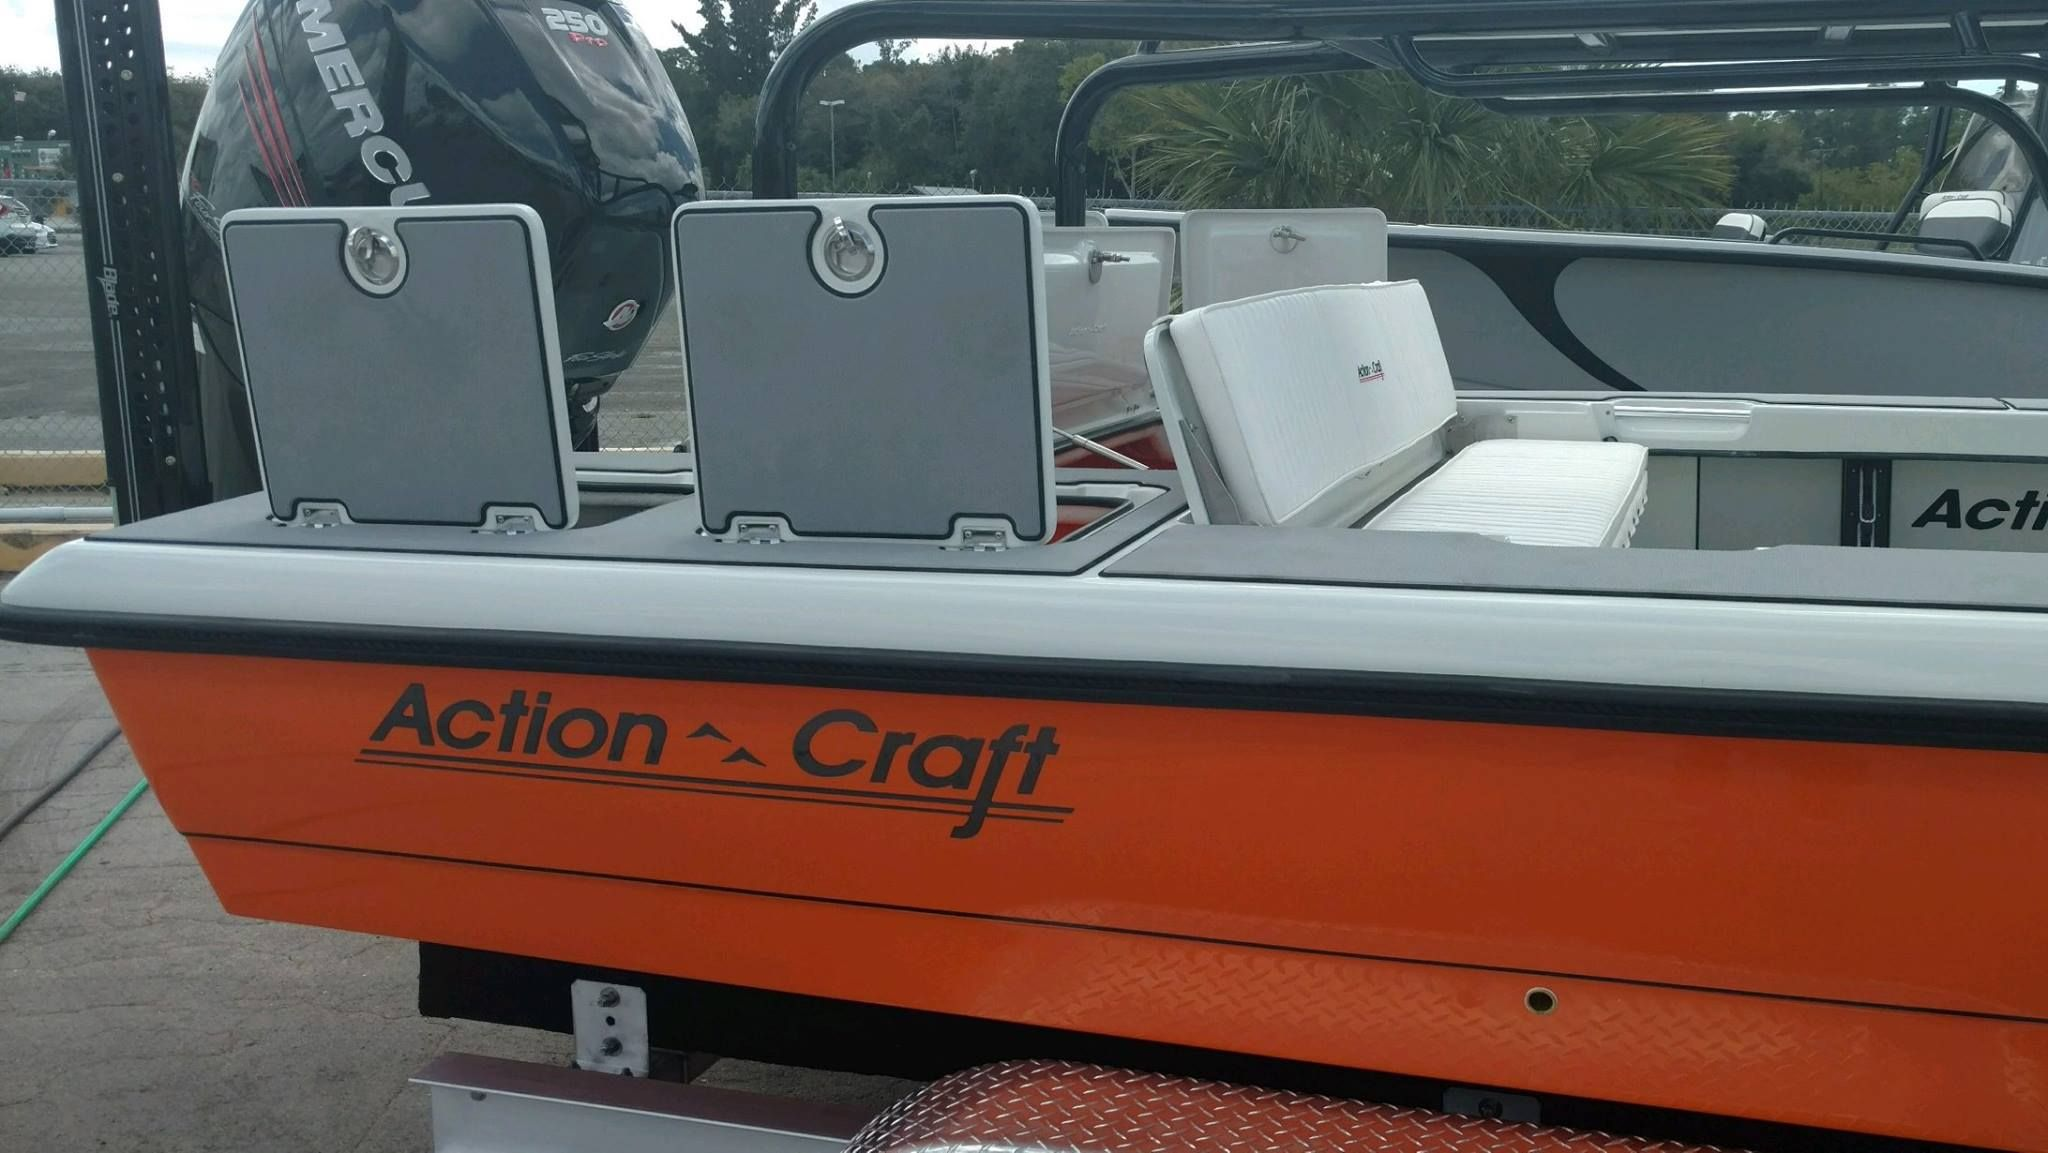 The Action Craft 2050 Gulf Coast Crossover Or Gcx Boat